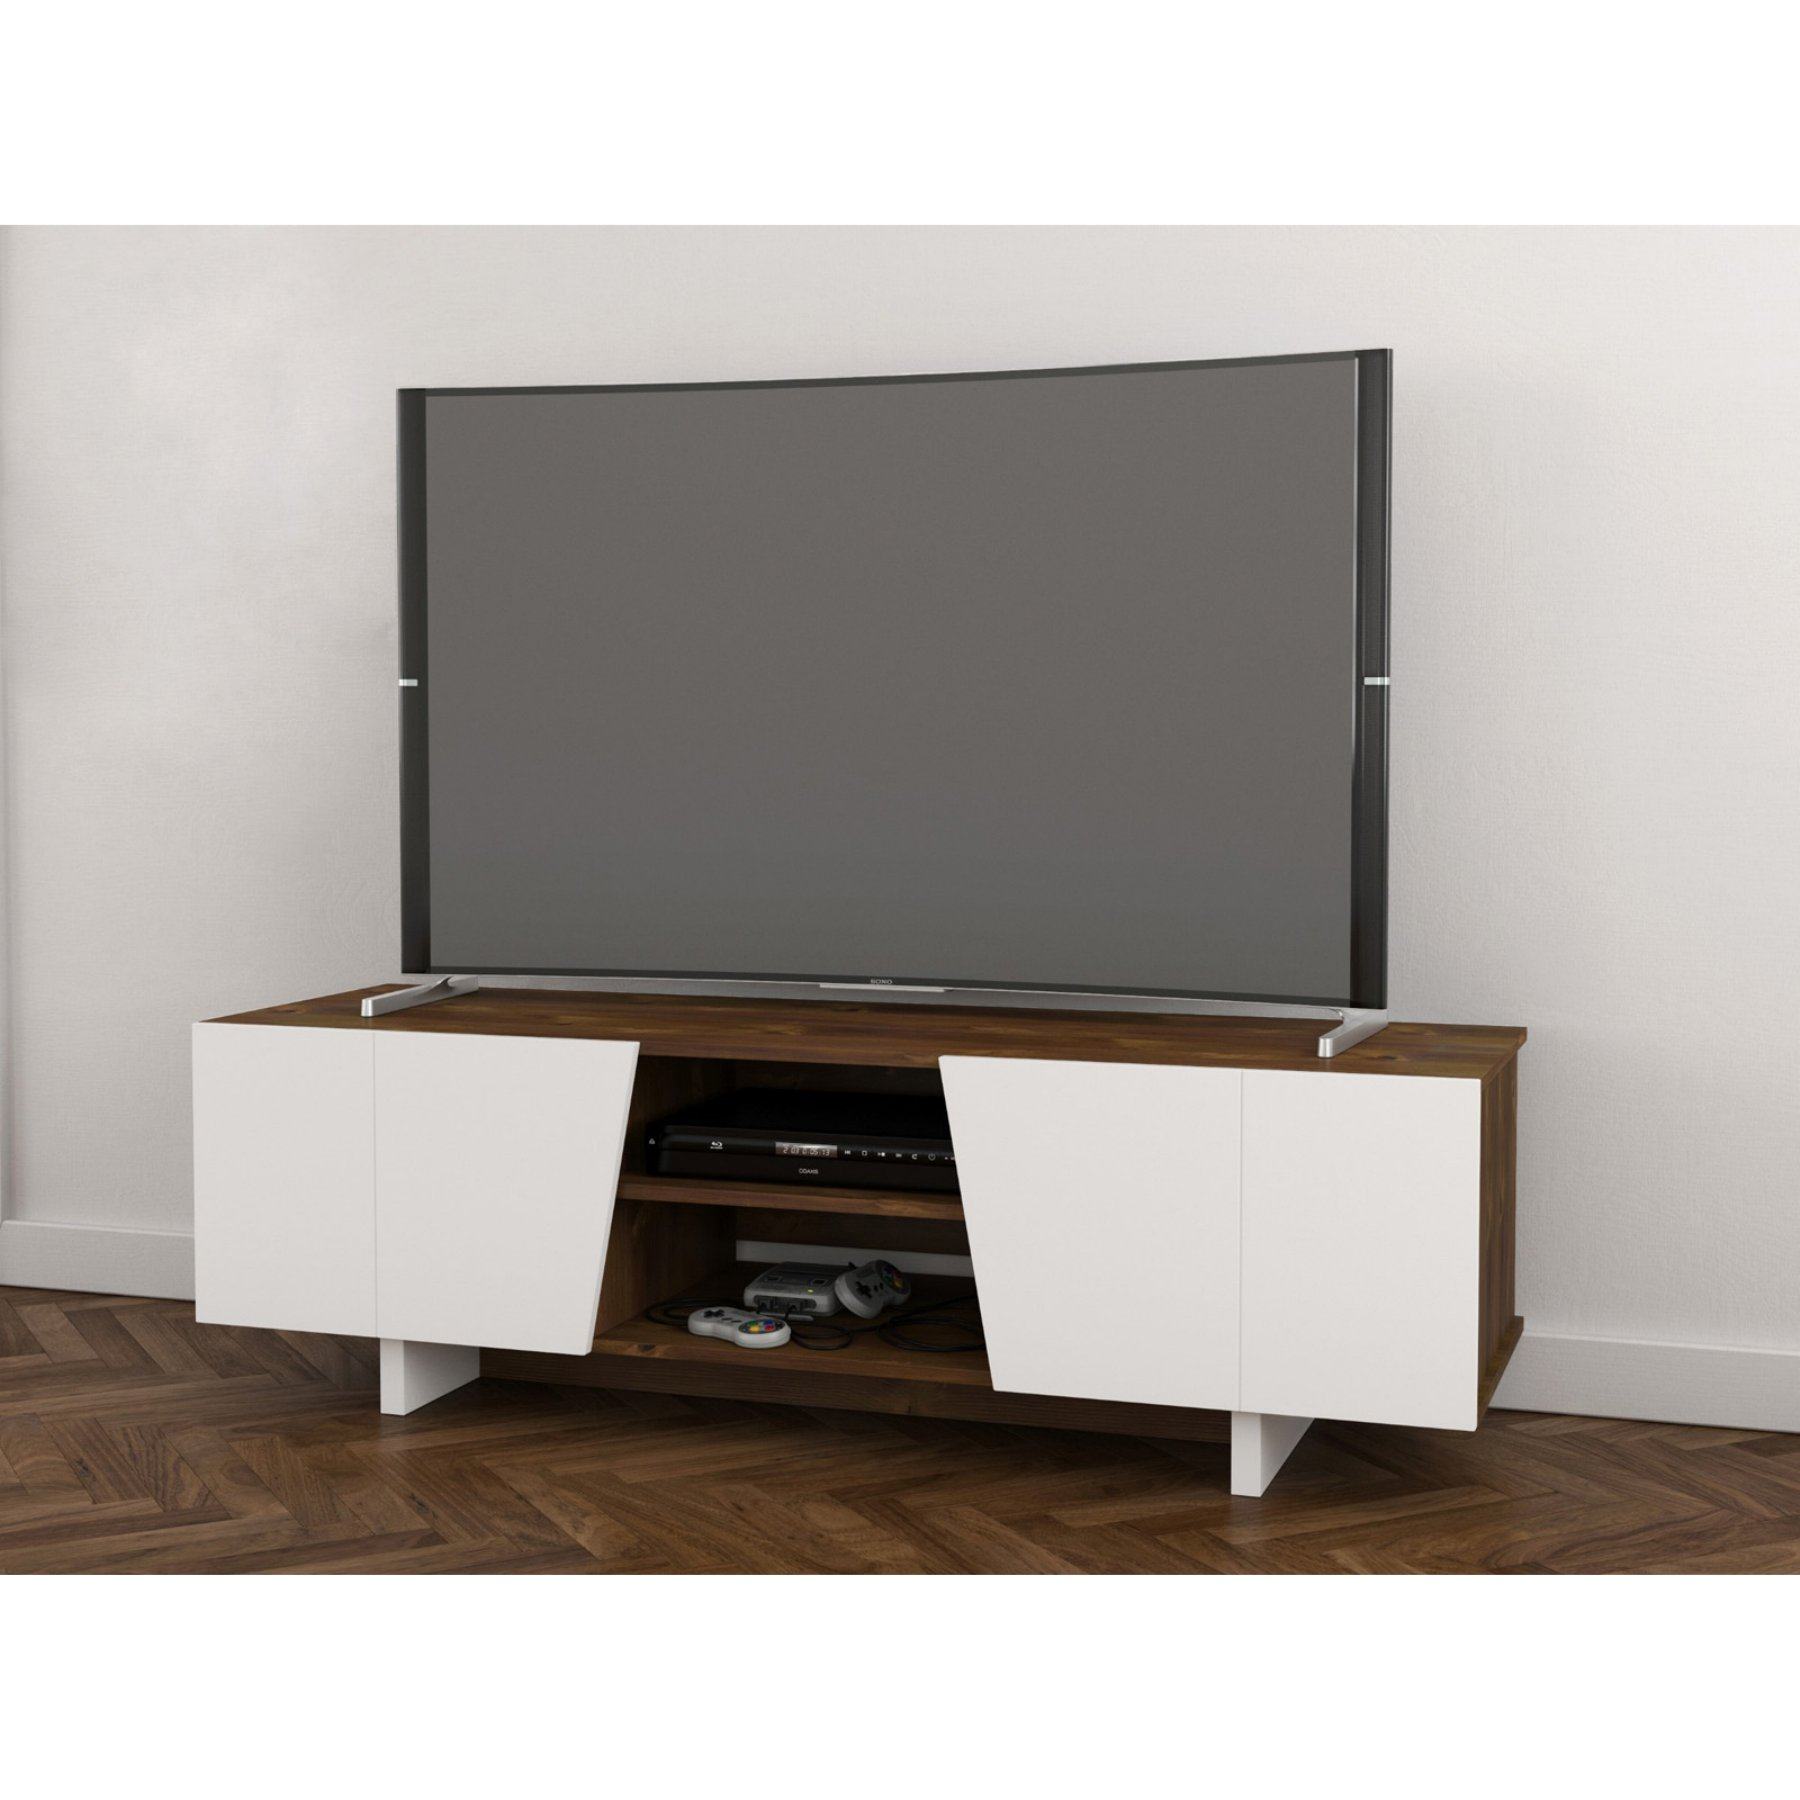 Nexera Oblik Tv Stand  Truffle And White  113046